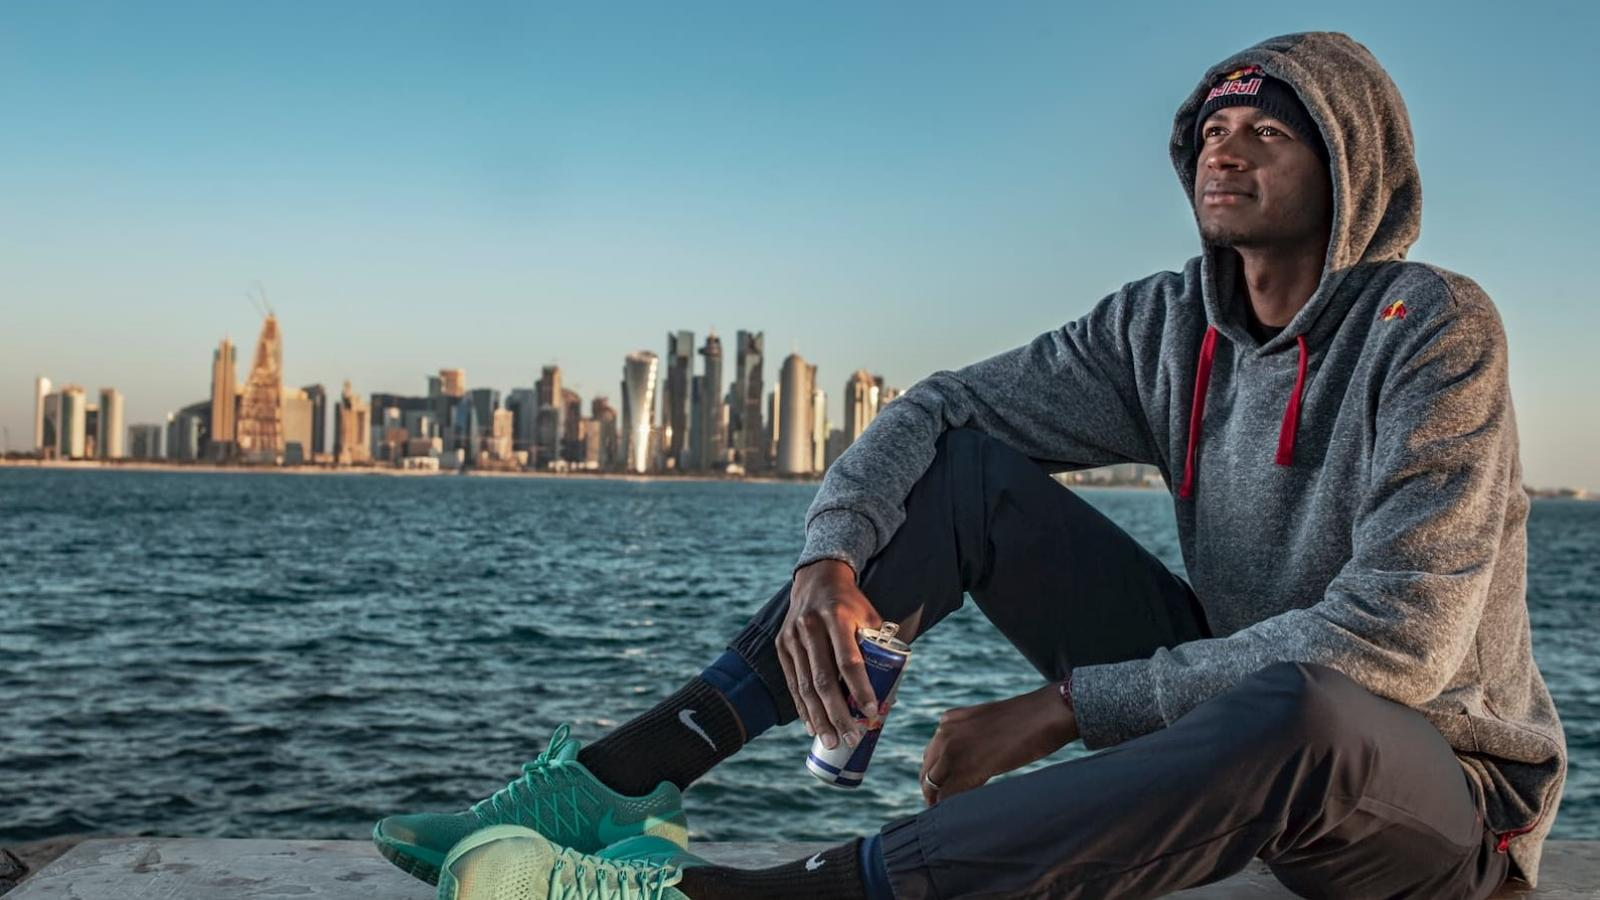 Exclusive Interview: Qatar's falcon and High Jump icon Mutaz Barshim gears up for the 2021 Season